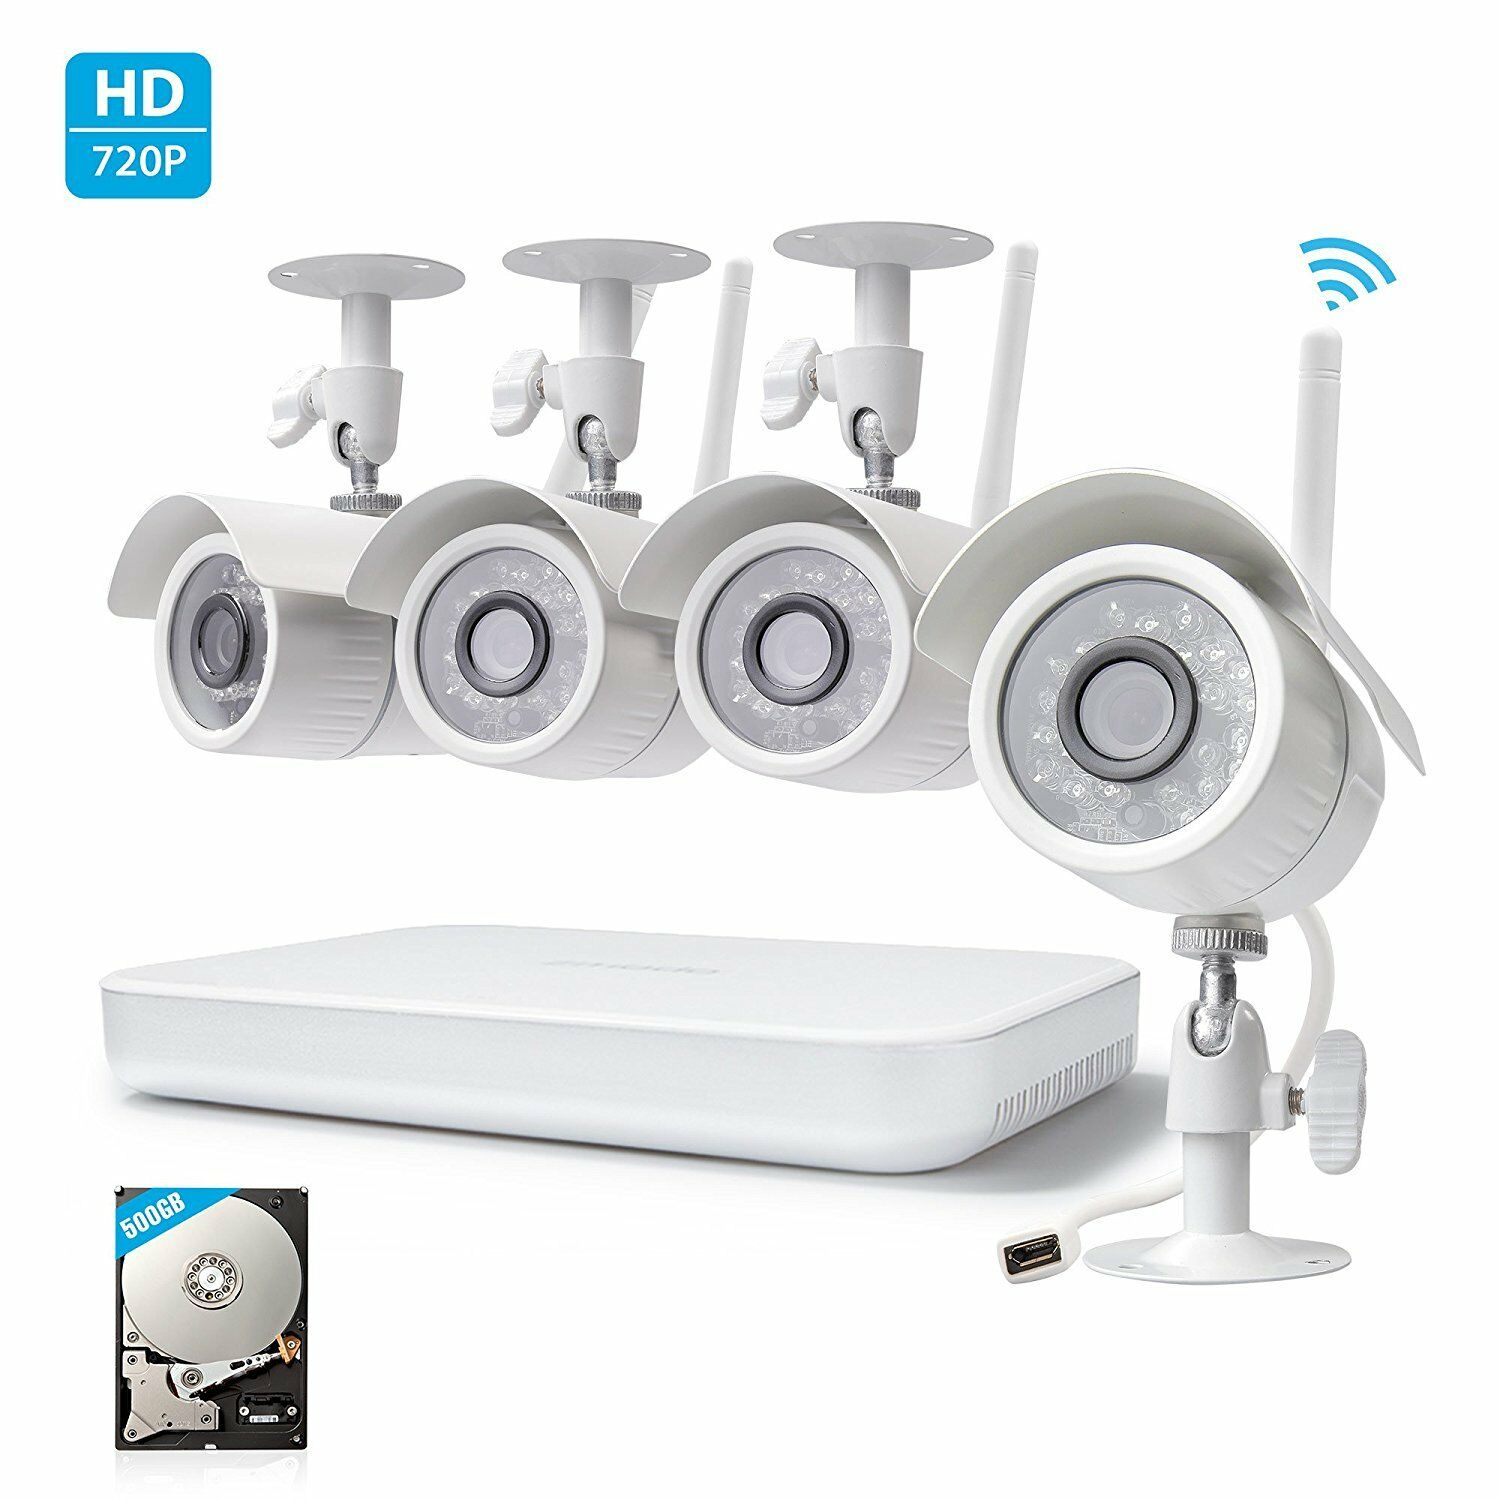 Zmodo 4 WiFi IP 720p HD Network Outdoor Security Camera NVR System 500GB